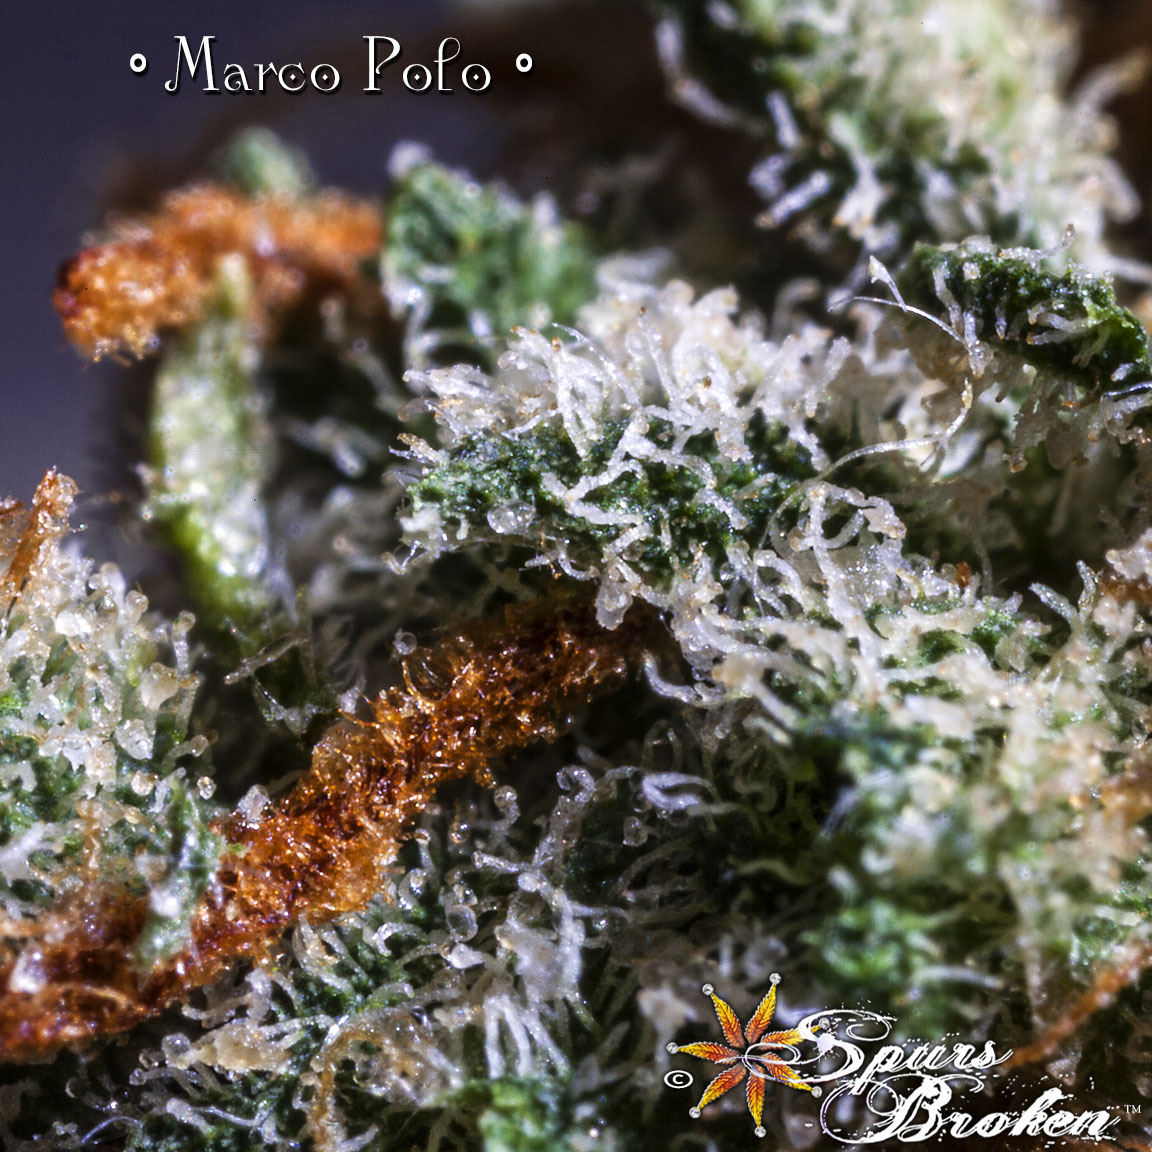 Marco Polo- Cannabis Macro Photography by Spurs Broken (Robert R. Sanders)